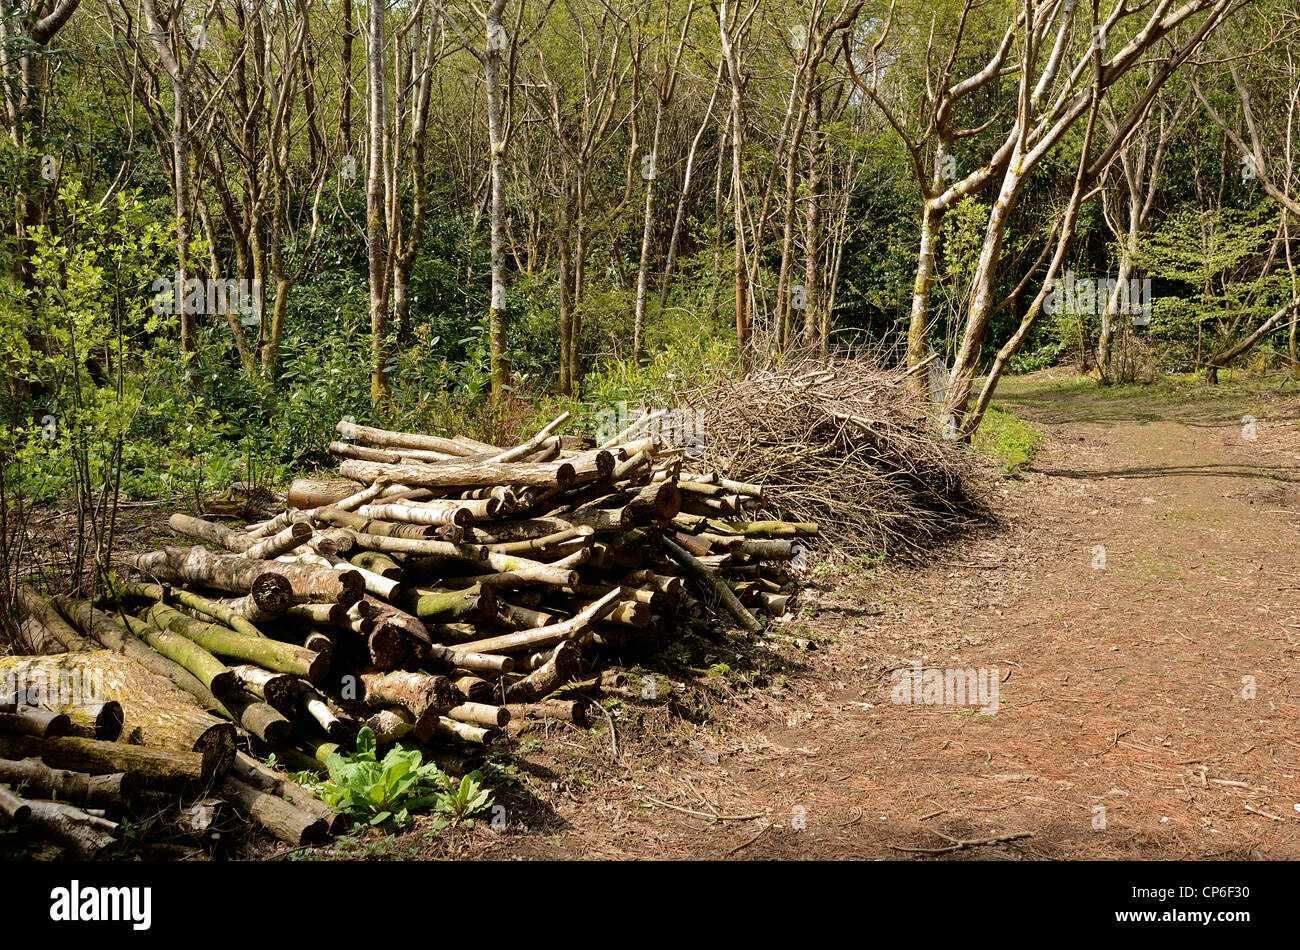 A pile of cut logs from some clearing work in a forest in Cheshire UK - Stock Image